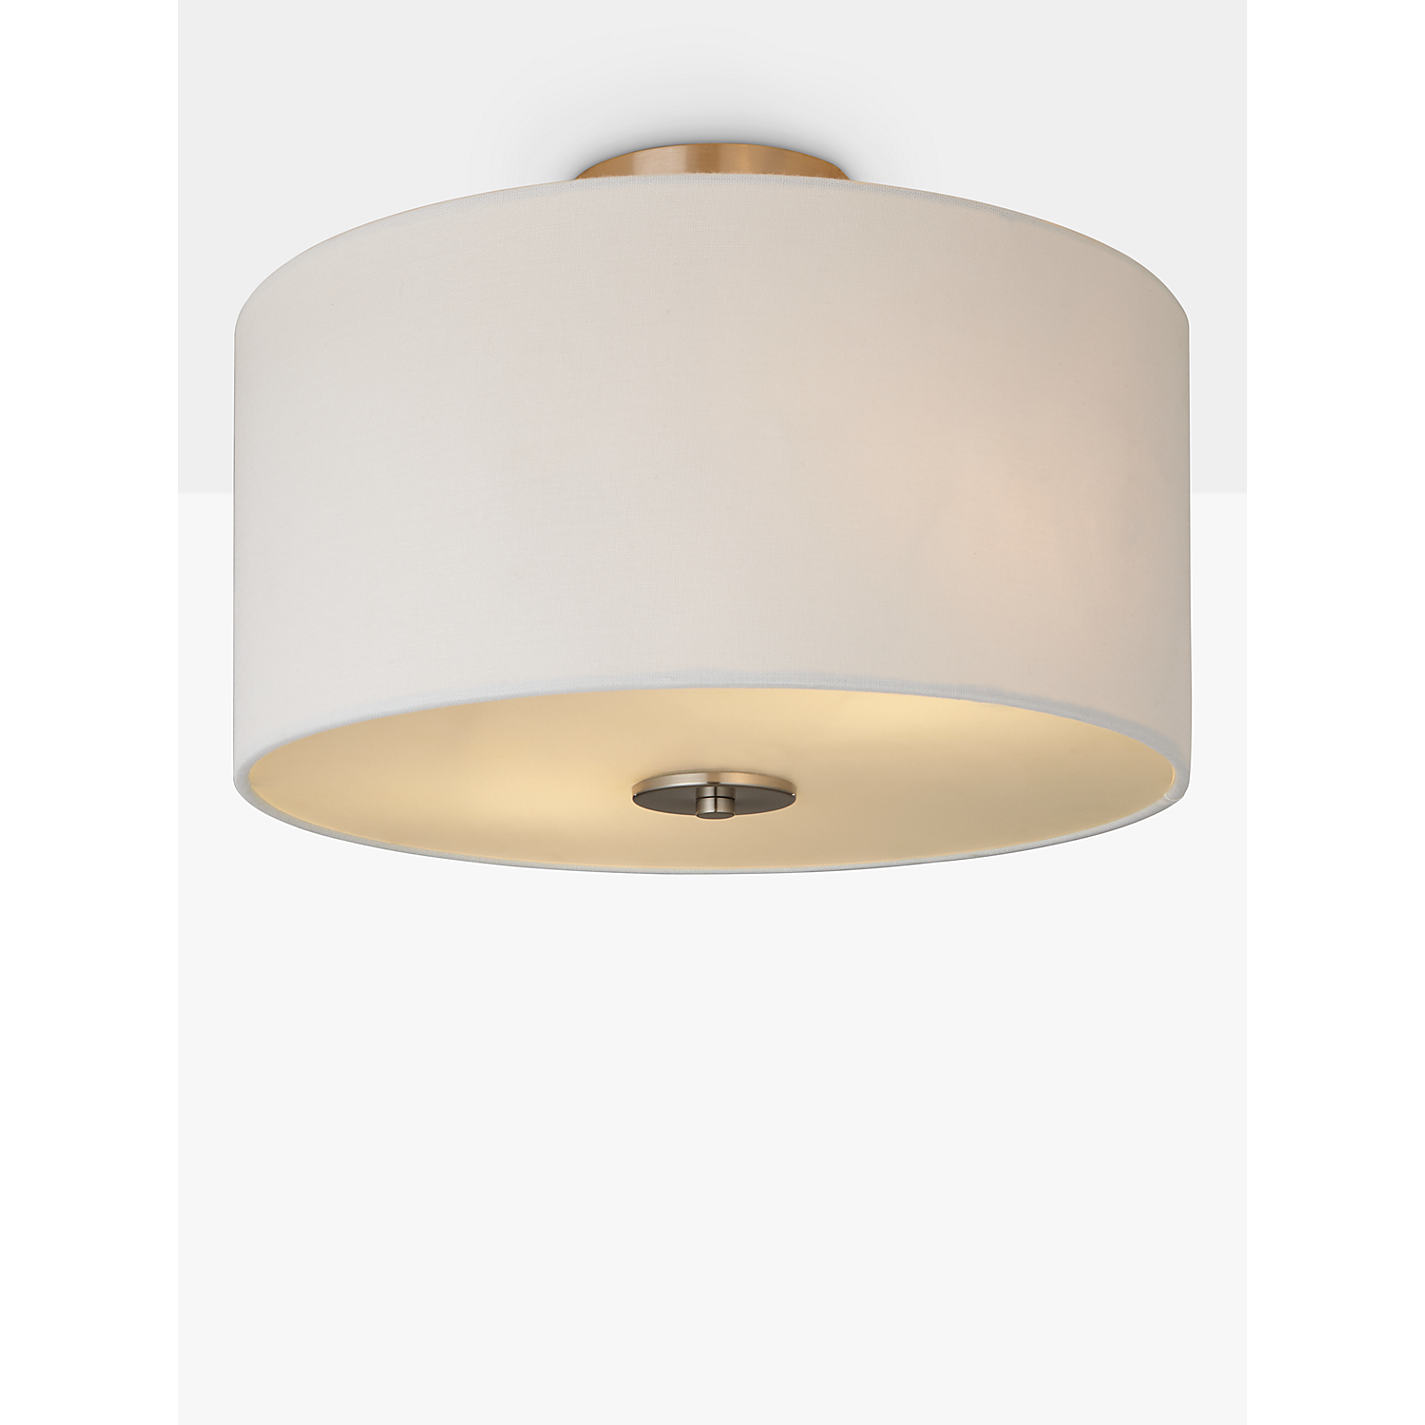 Buy john lewis jamieson semi flush ceiling light satin nickel buy john lewis jamieson semi flush ceiling light satin nickel online at johnlewis aloadofball Gallery